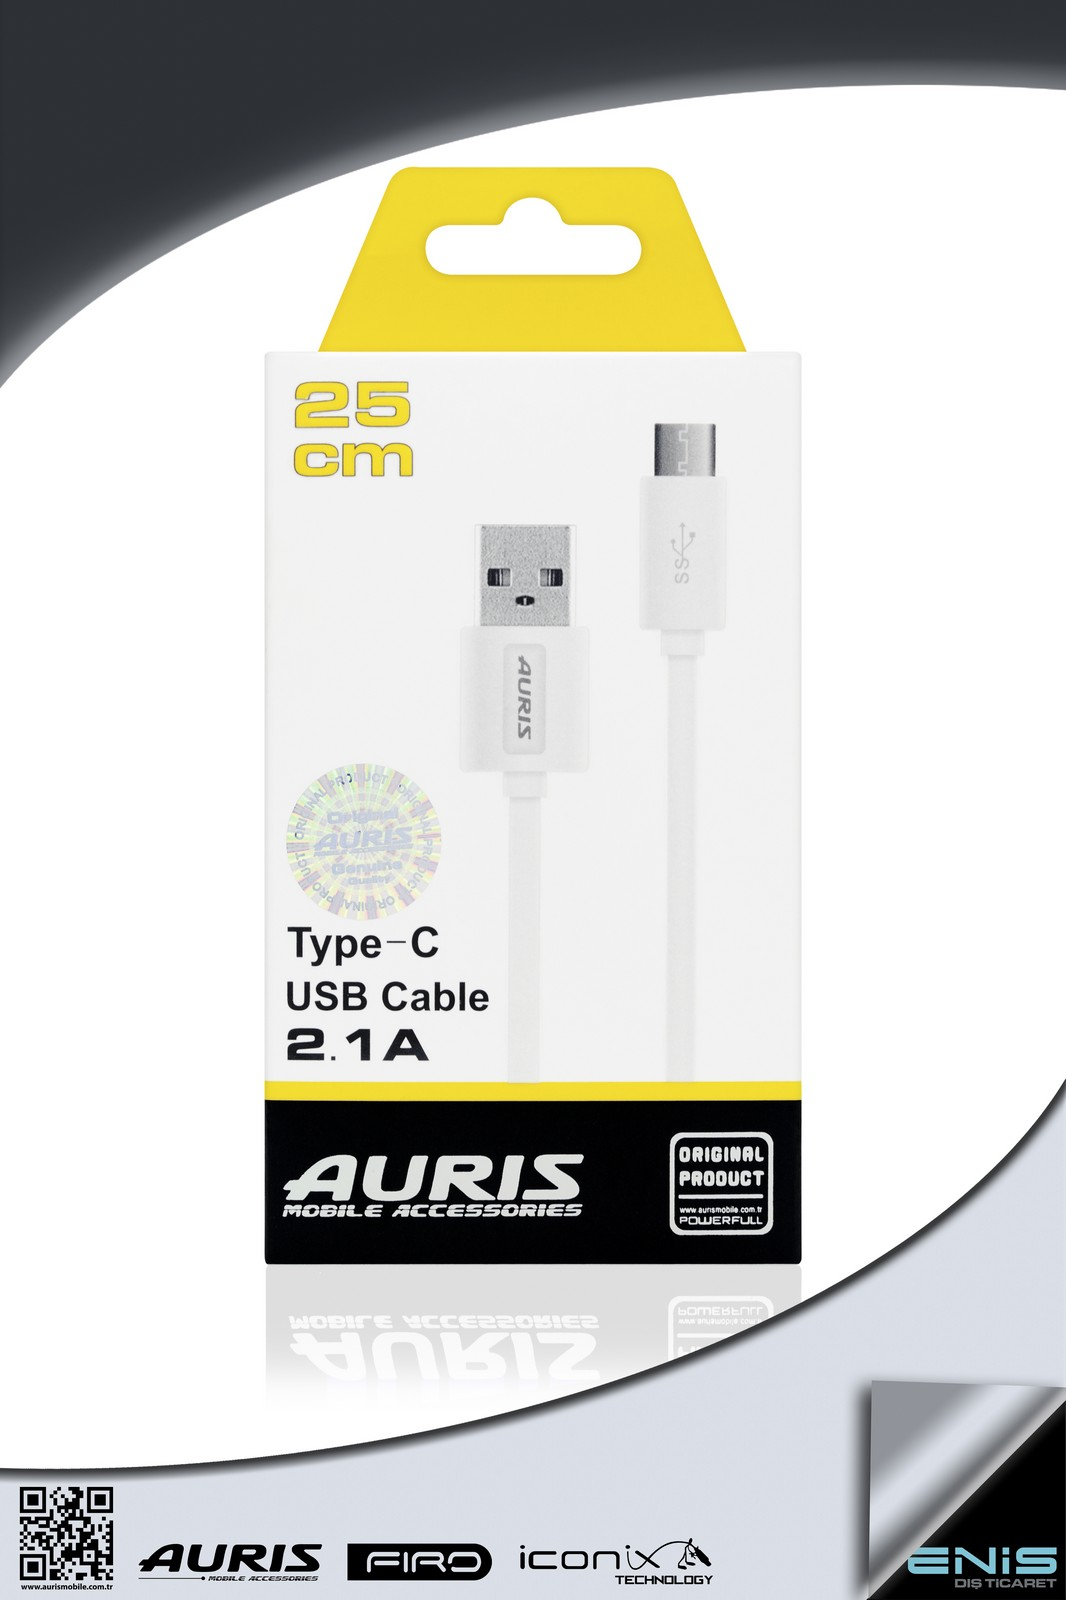 25 cm Type - C 2.1 A Usb Cable